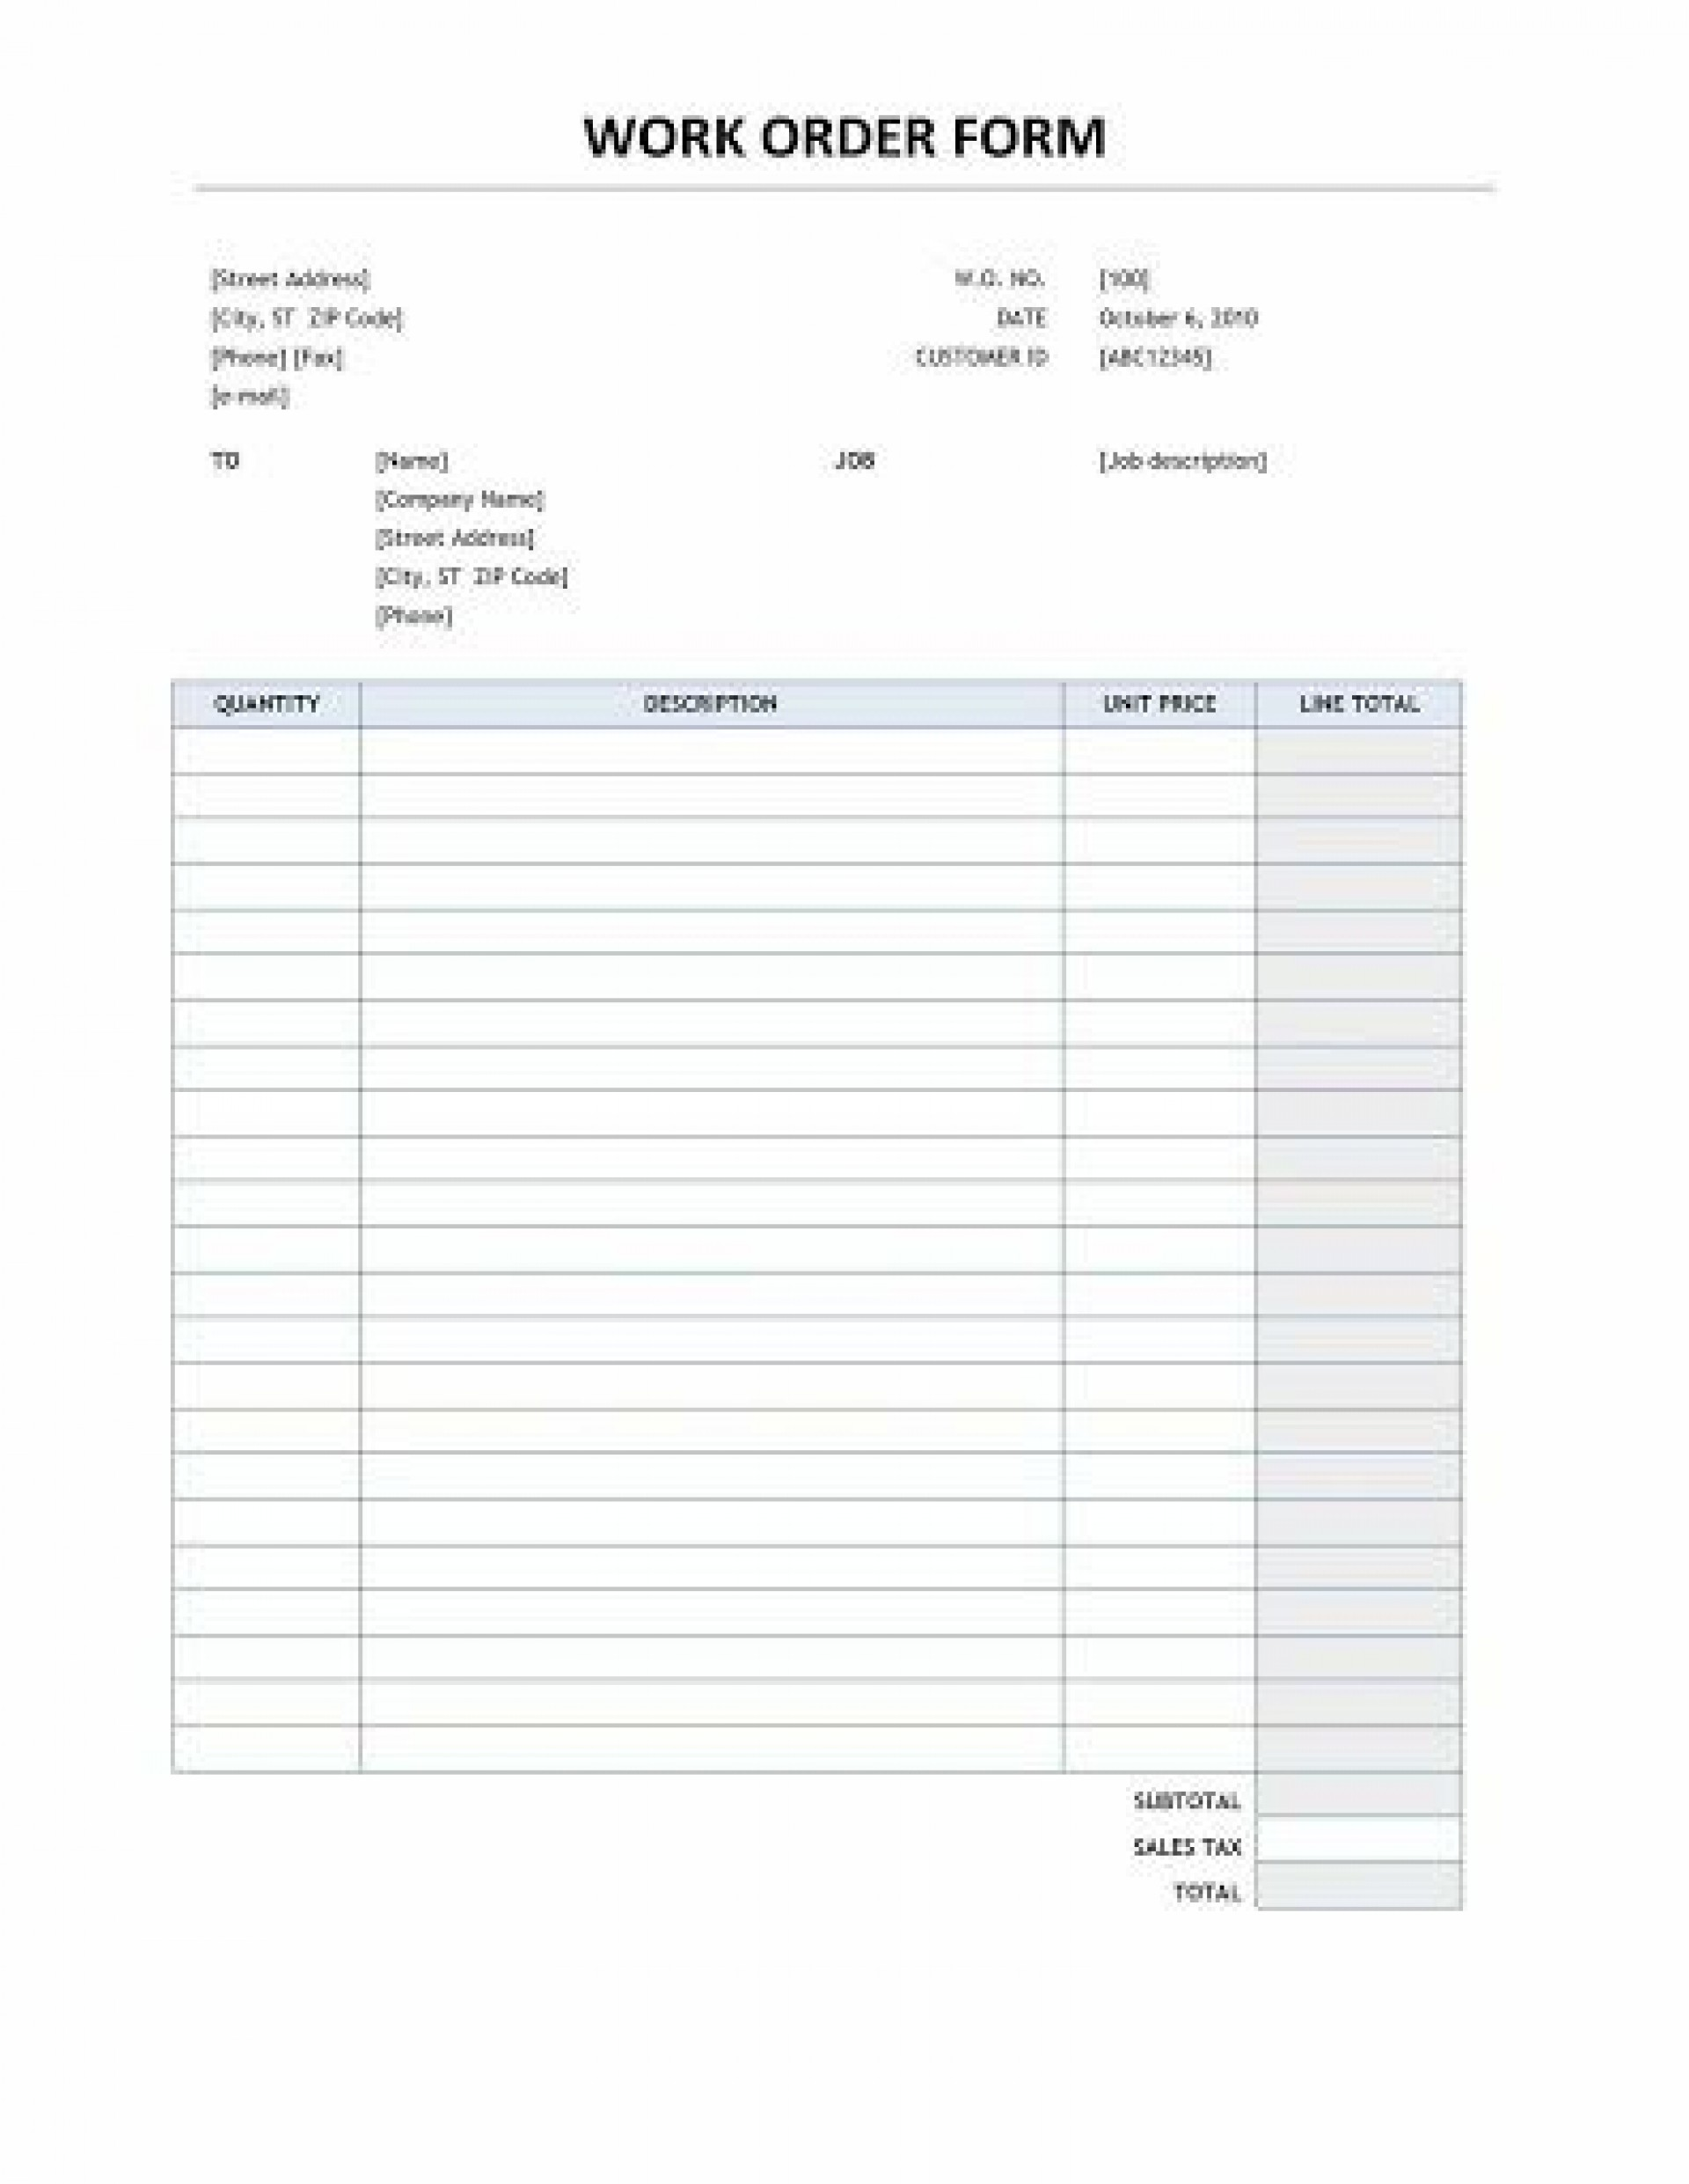 004 Stunning Work Order Template Free Idea  Automotive Auto Printable Request1920